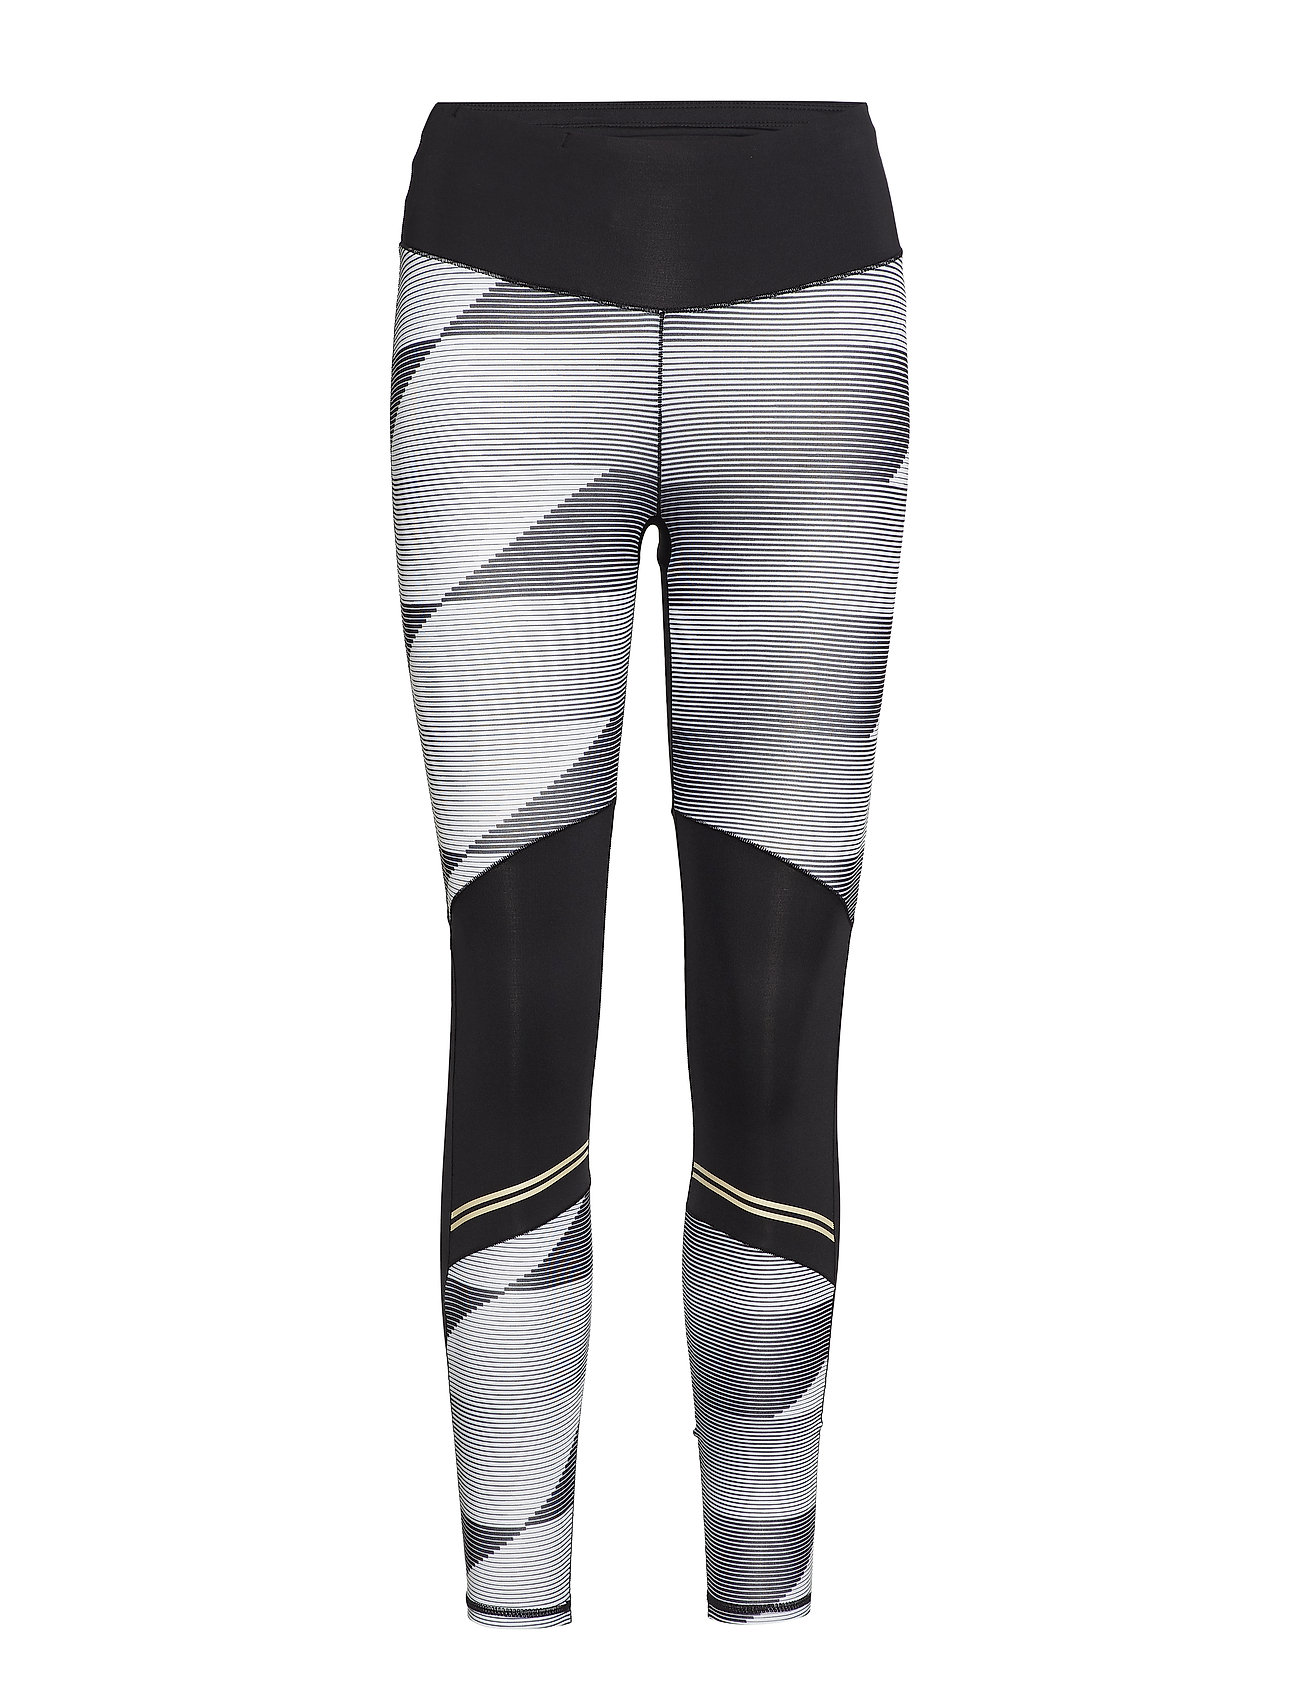 d5af4251db4 Breakaway Shape Tights (Black white) (£51.75) - Craft -